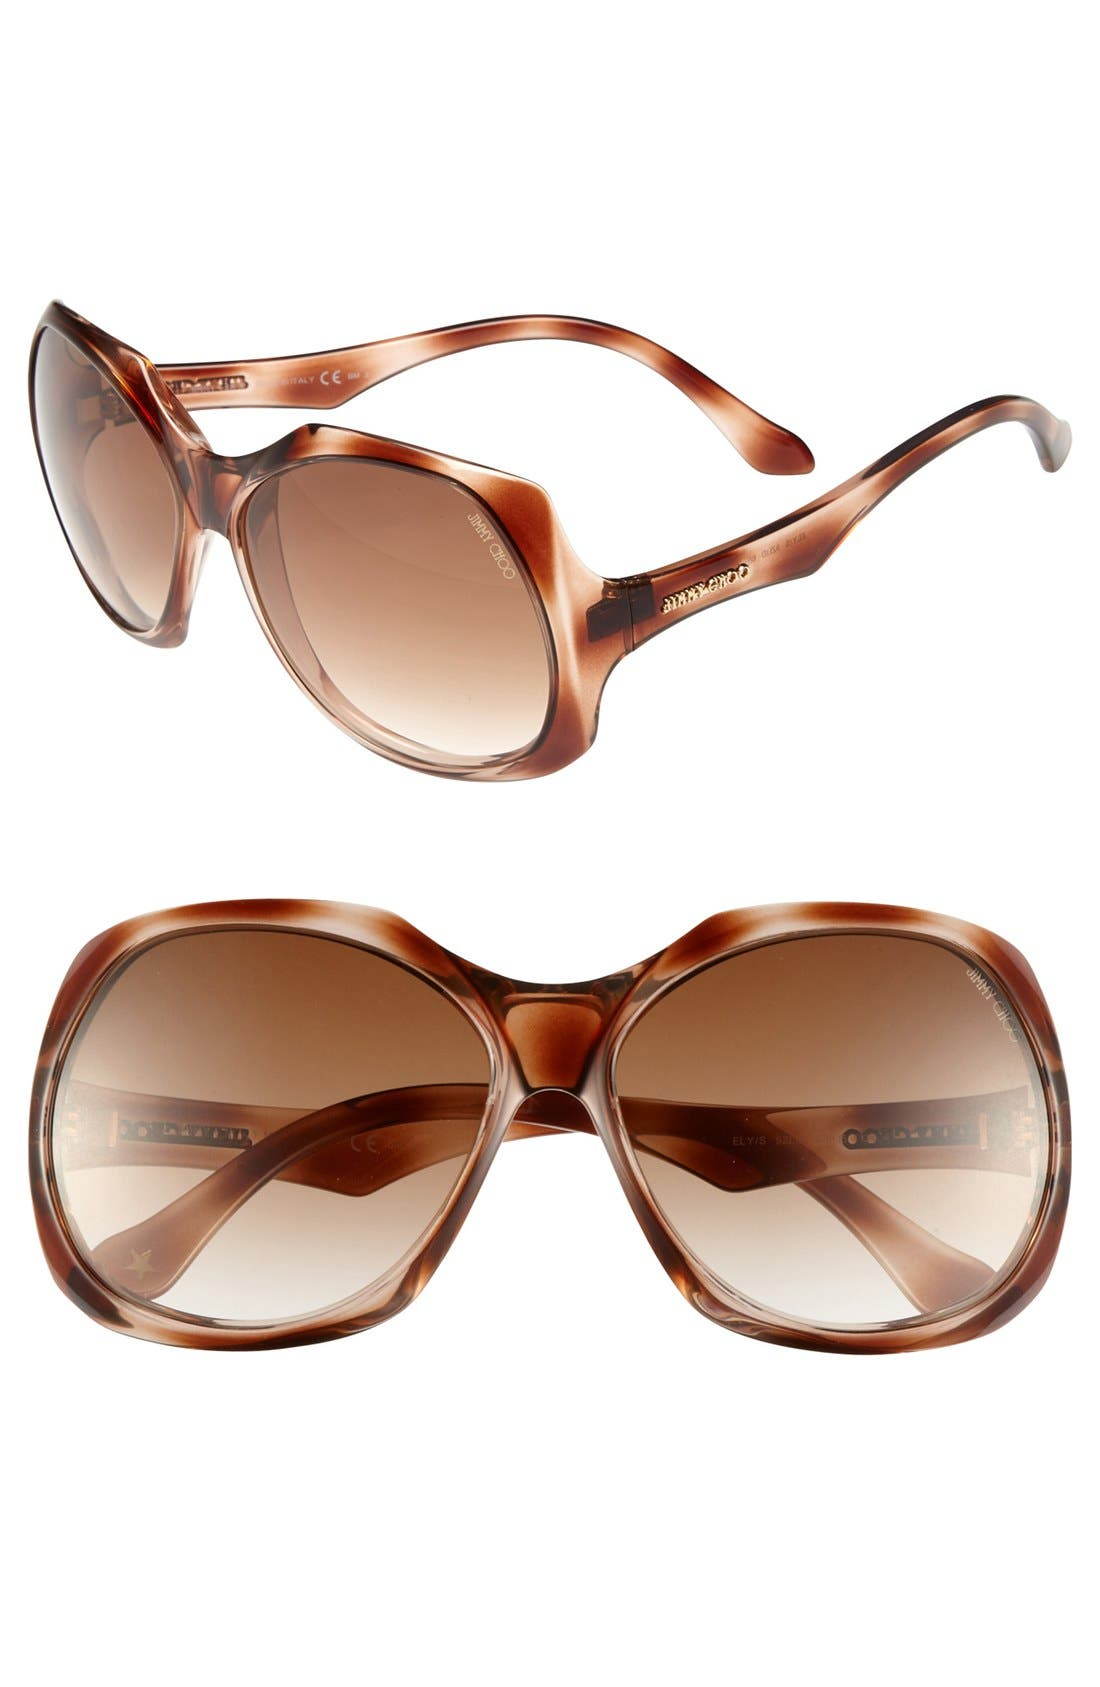 Alternate Image 1 Selected - Jimmy Choo 'Elys' 60mm Sunglasses